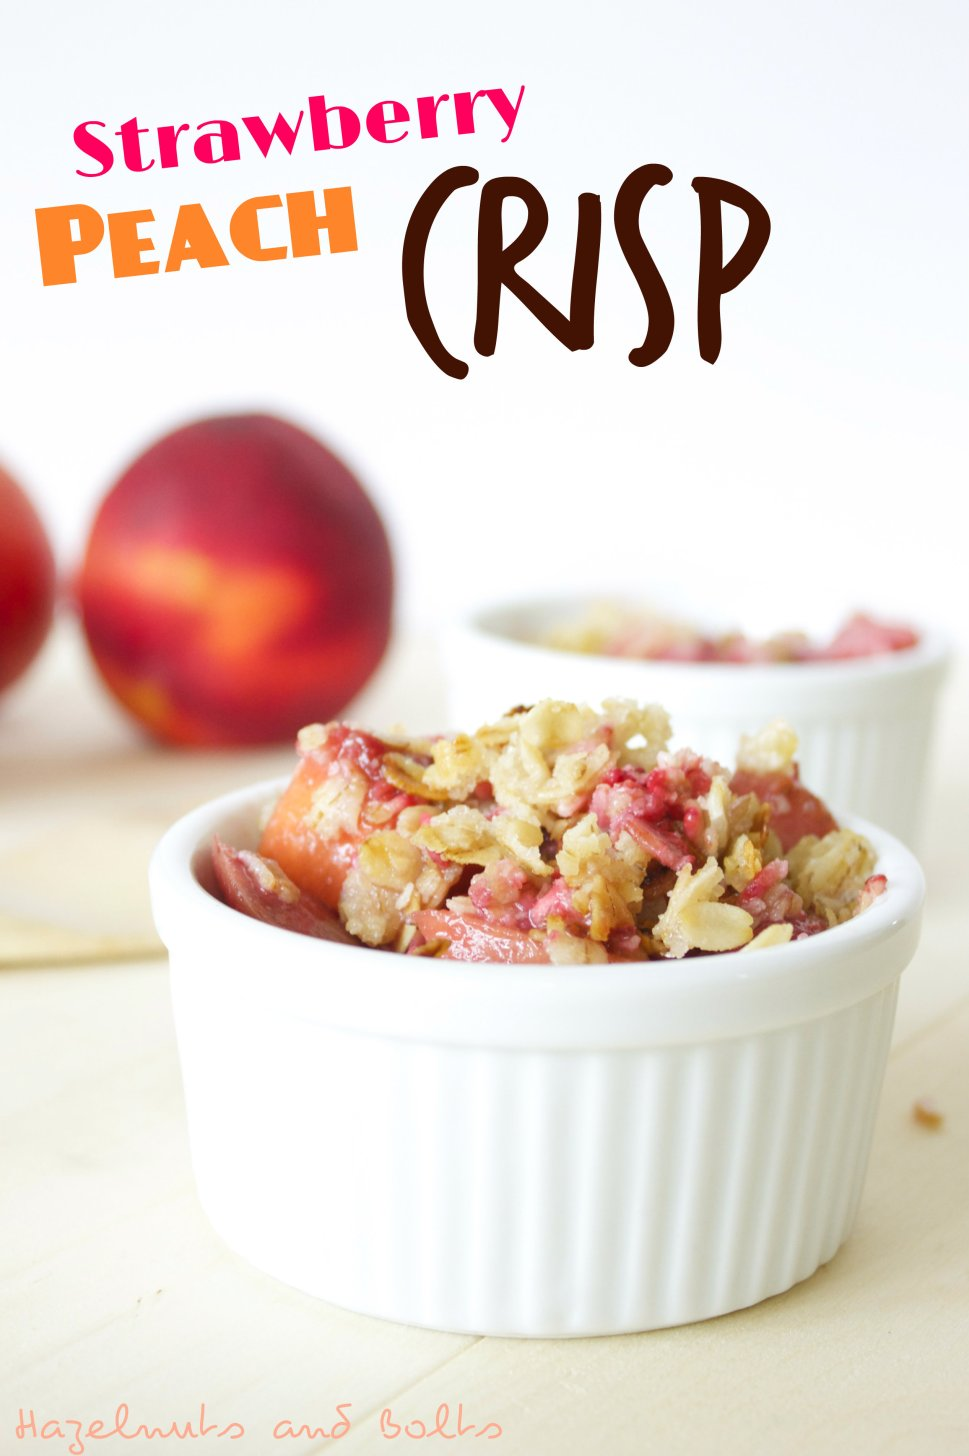 Strawberry Peach Crisp- All natural, fruit-packed crisp that can be made gluten-free!